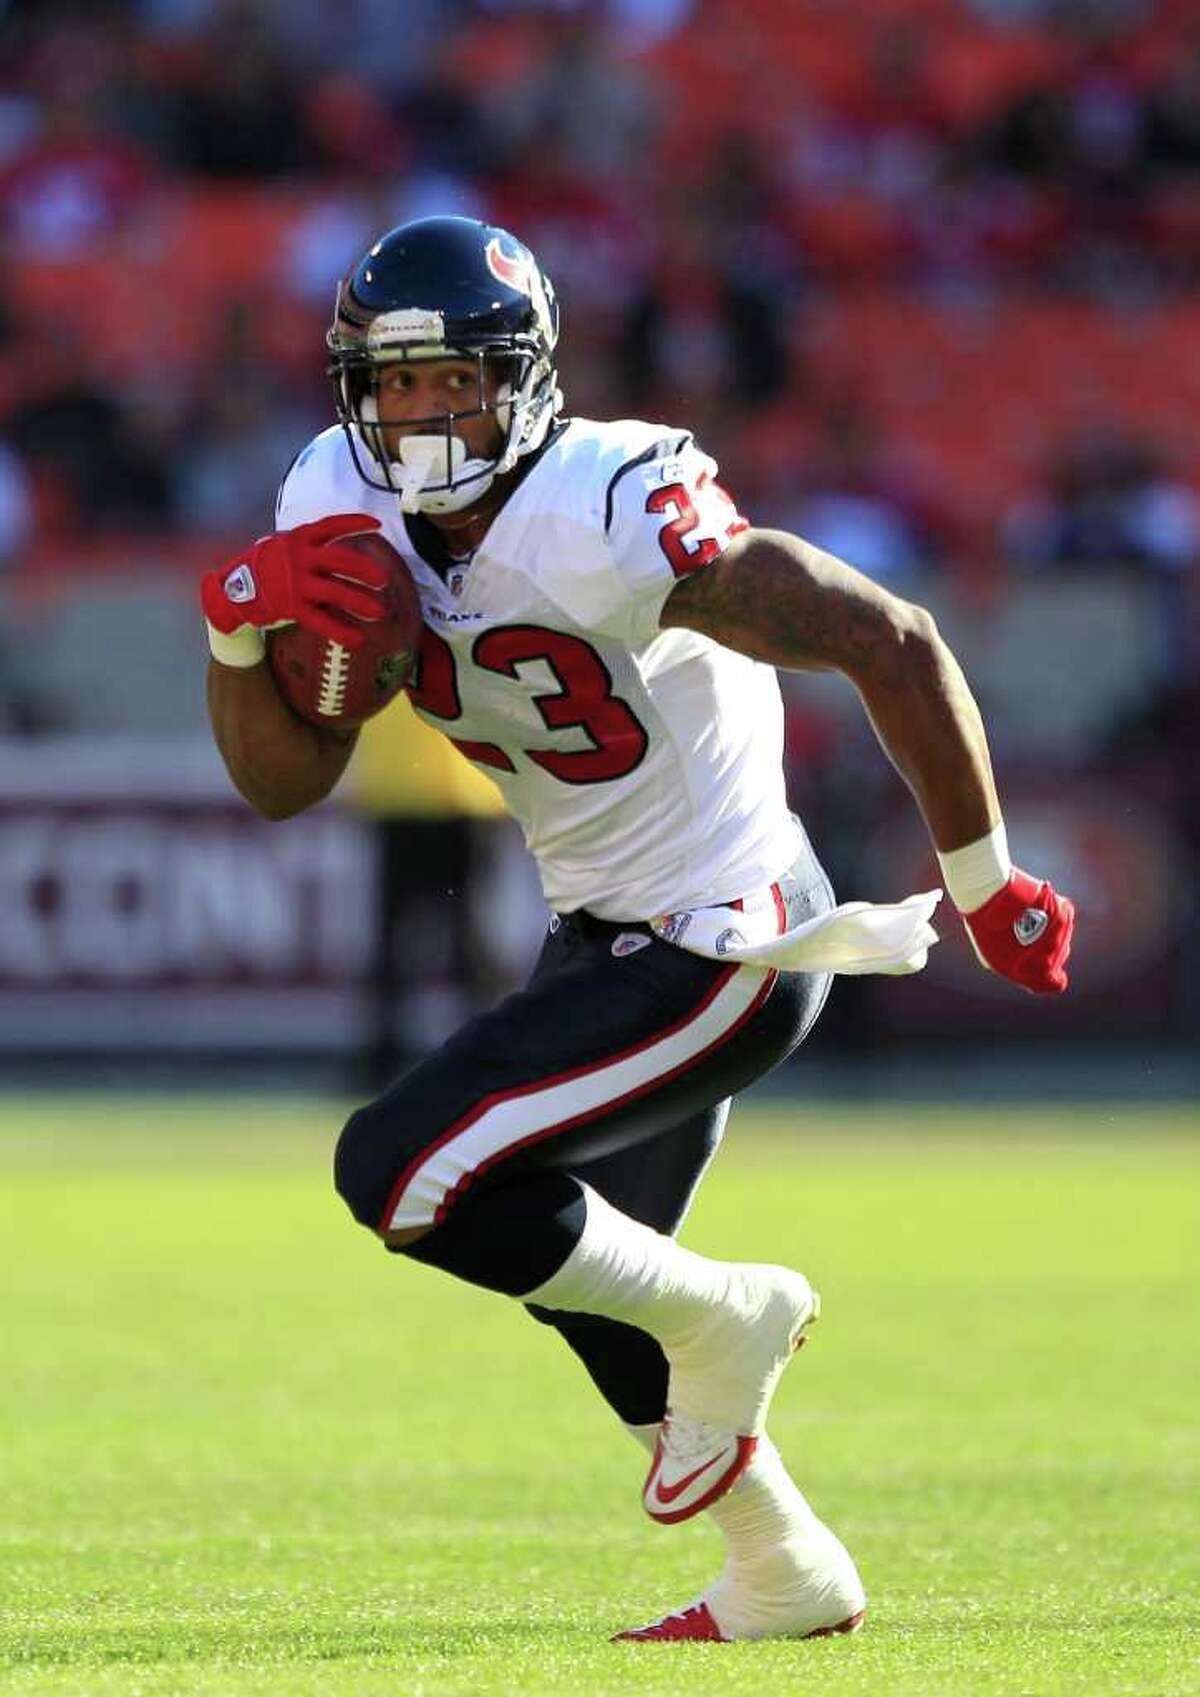 Houston Texans running back Arian Foster (23) runs against the San Francisco 49ers in the first quarter of a preseason NFL football game in San Francisco, Saturday, Aug. 27, 2011. (AP Photo/Marcio Jose Sanchez)